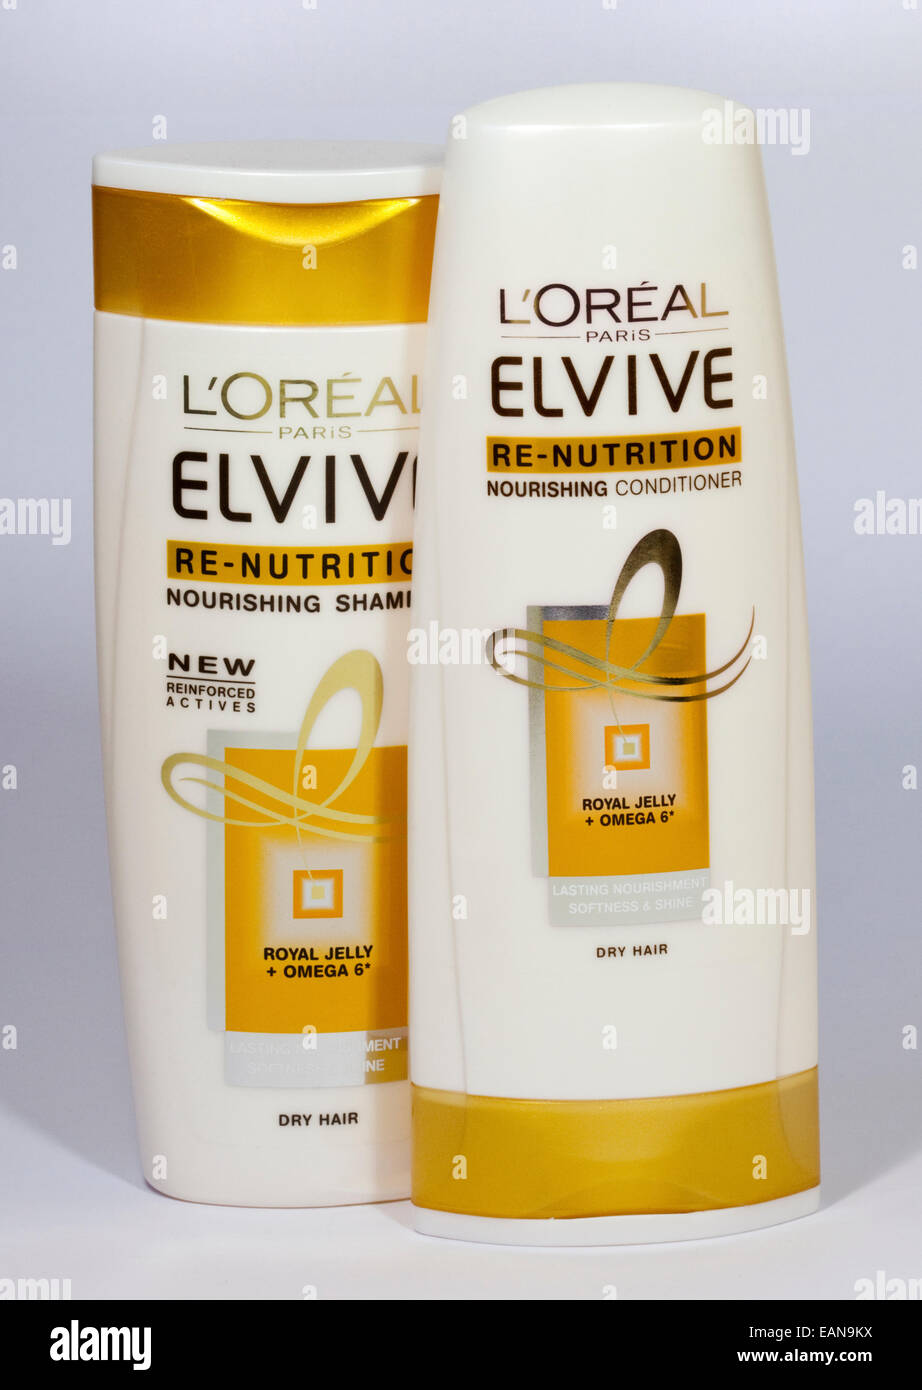 L'Oreal Elvive Re-Nutrition Shampoo and Conditioner for Dry Hair - Stock Image